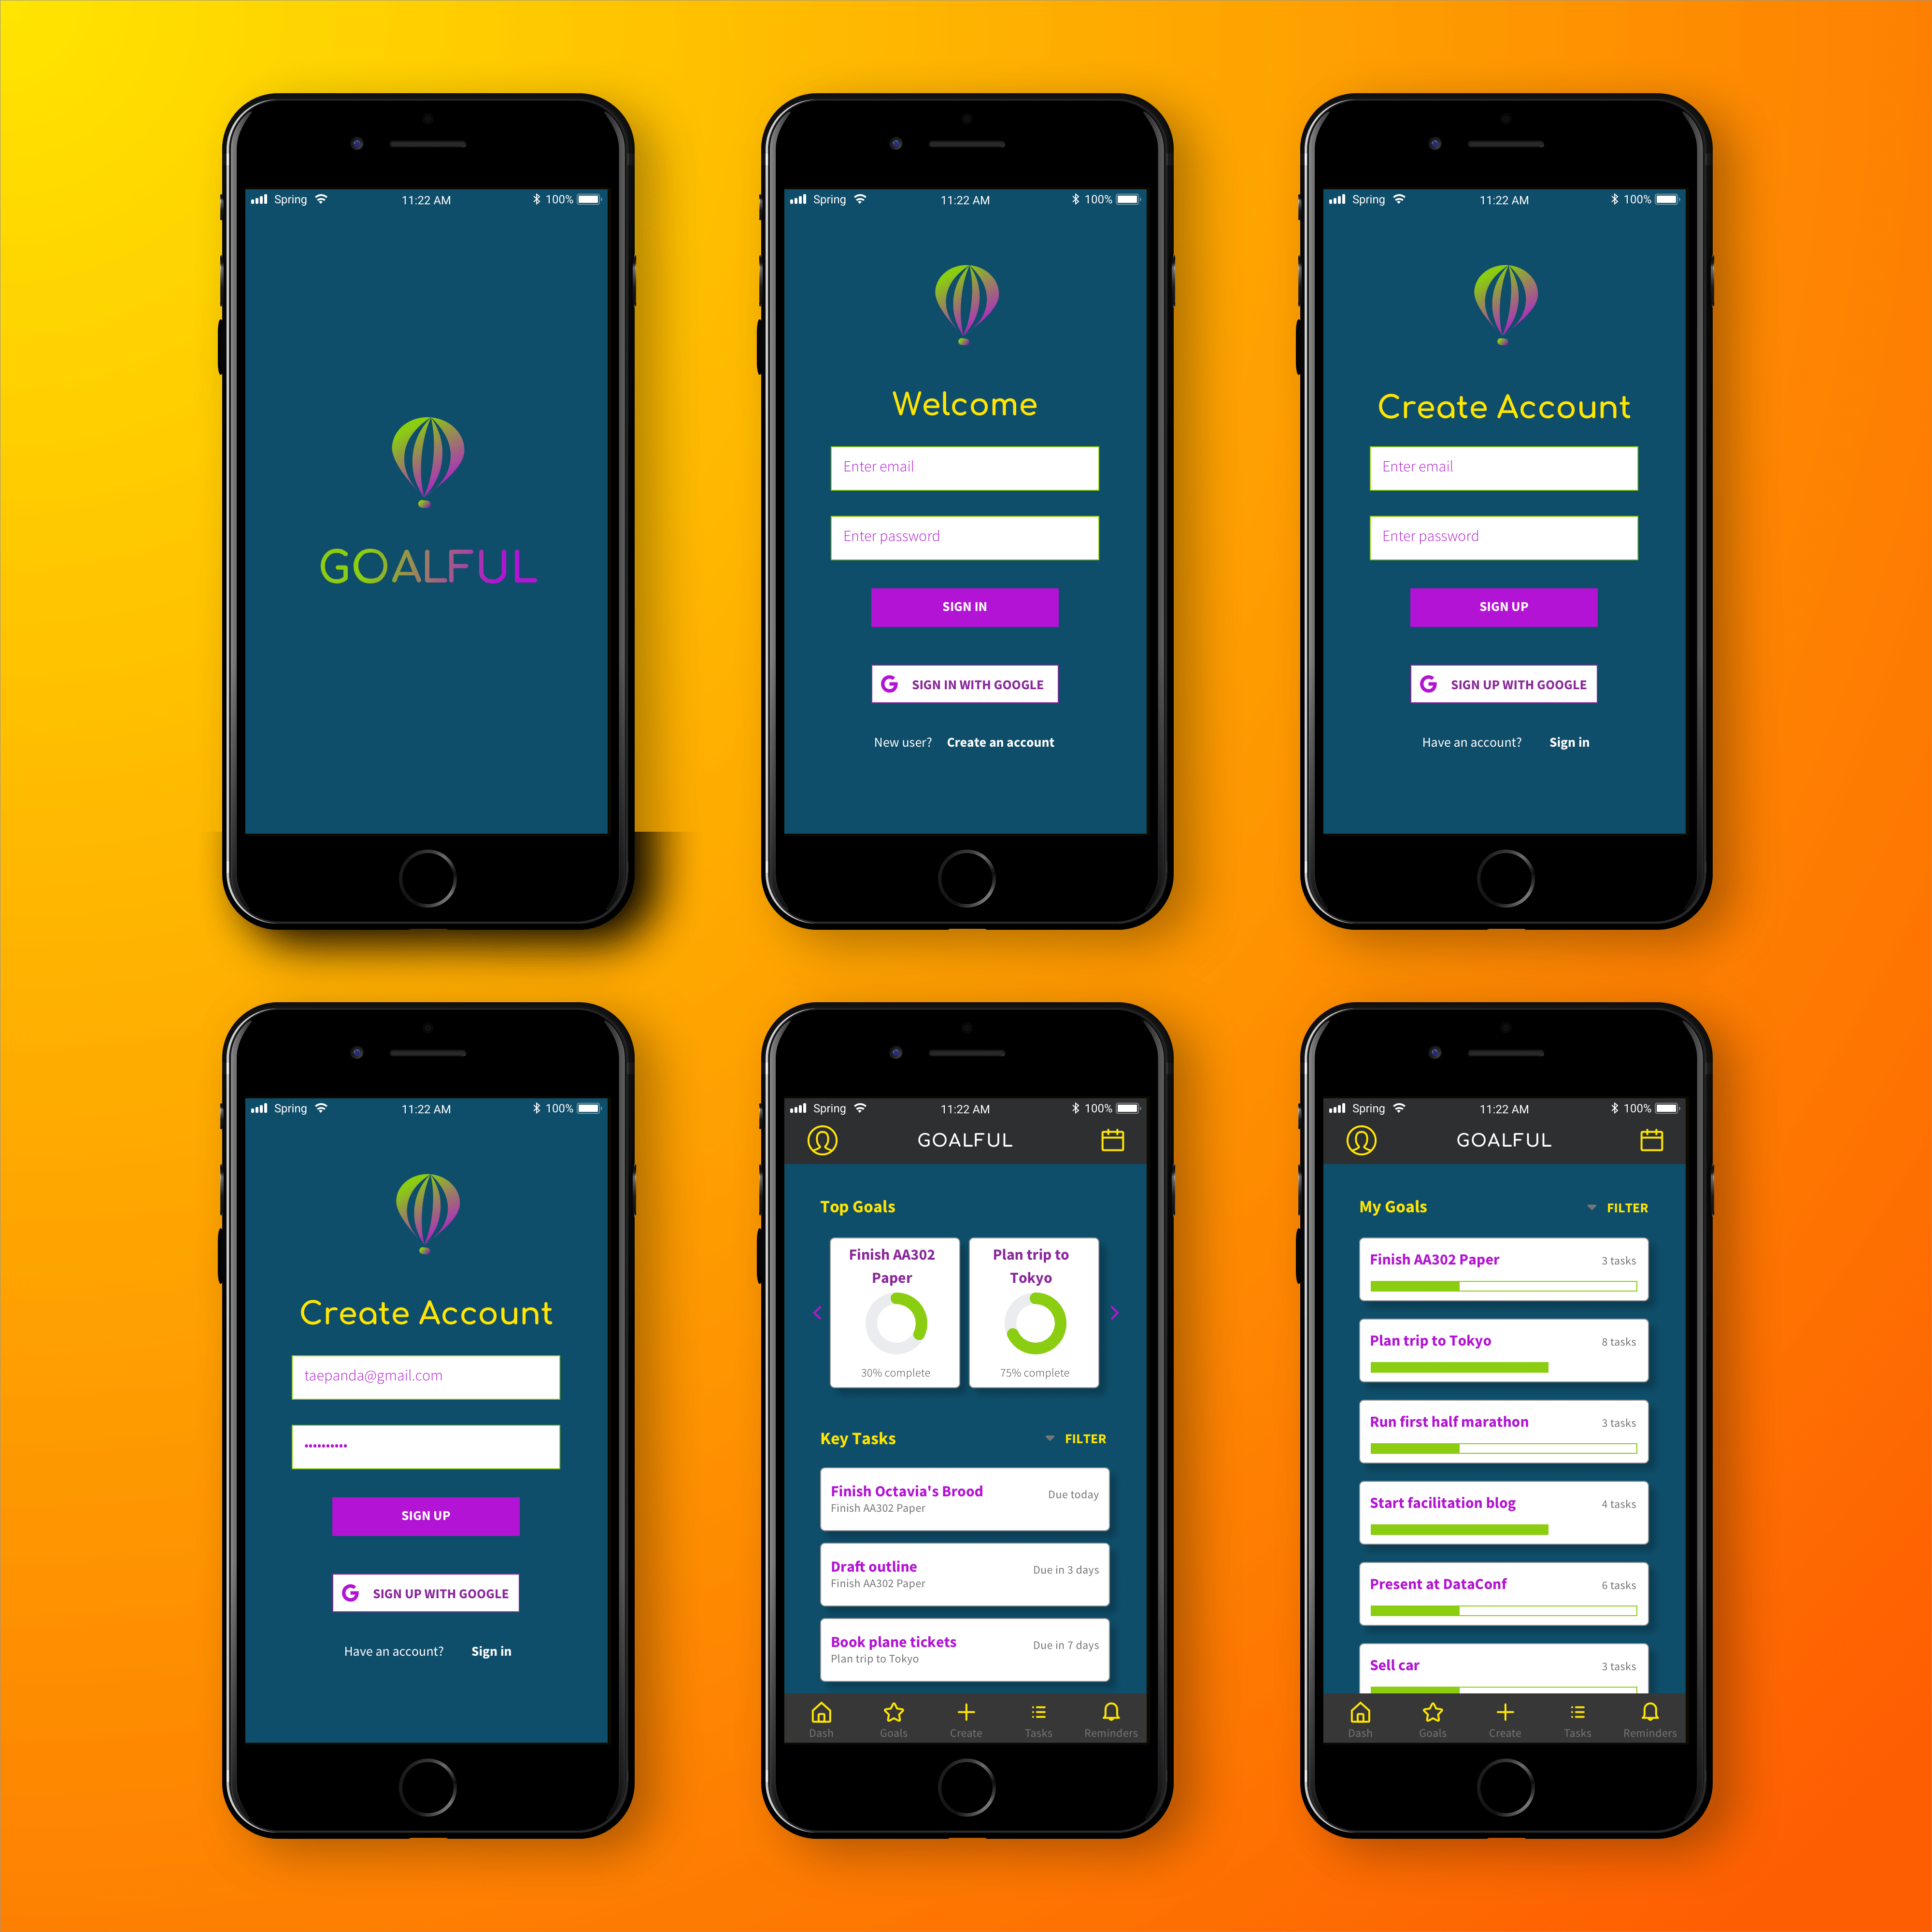 Set of six high-fidelity, full-color mockups of the application's key screens, including a splash screen, signup and login, and dashboard.